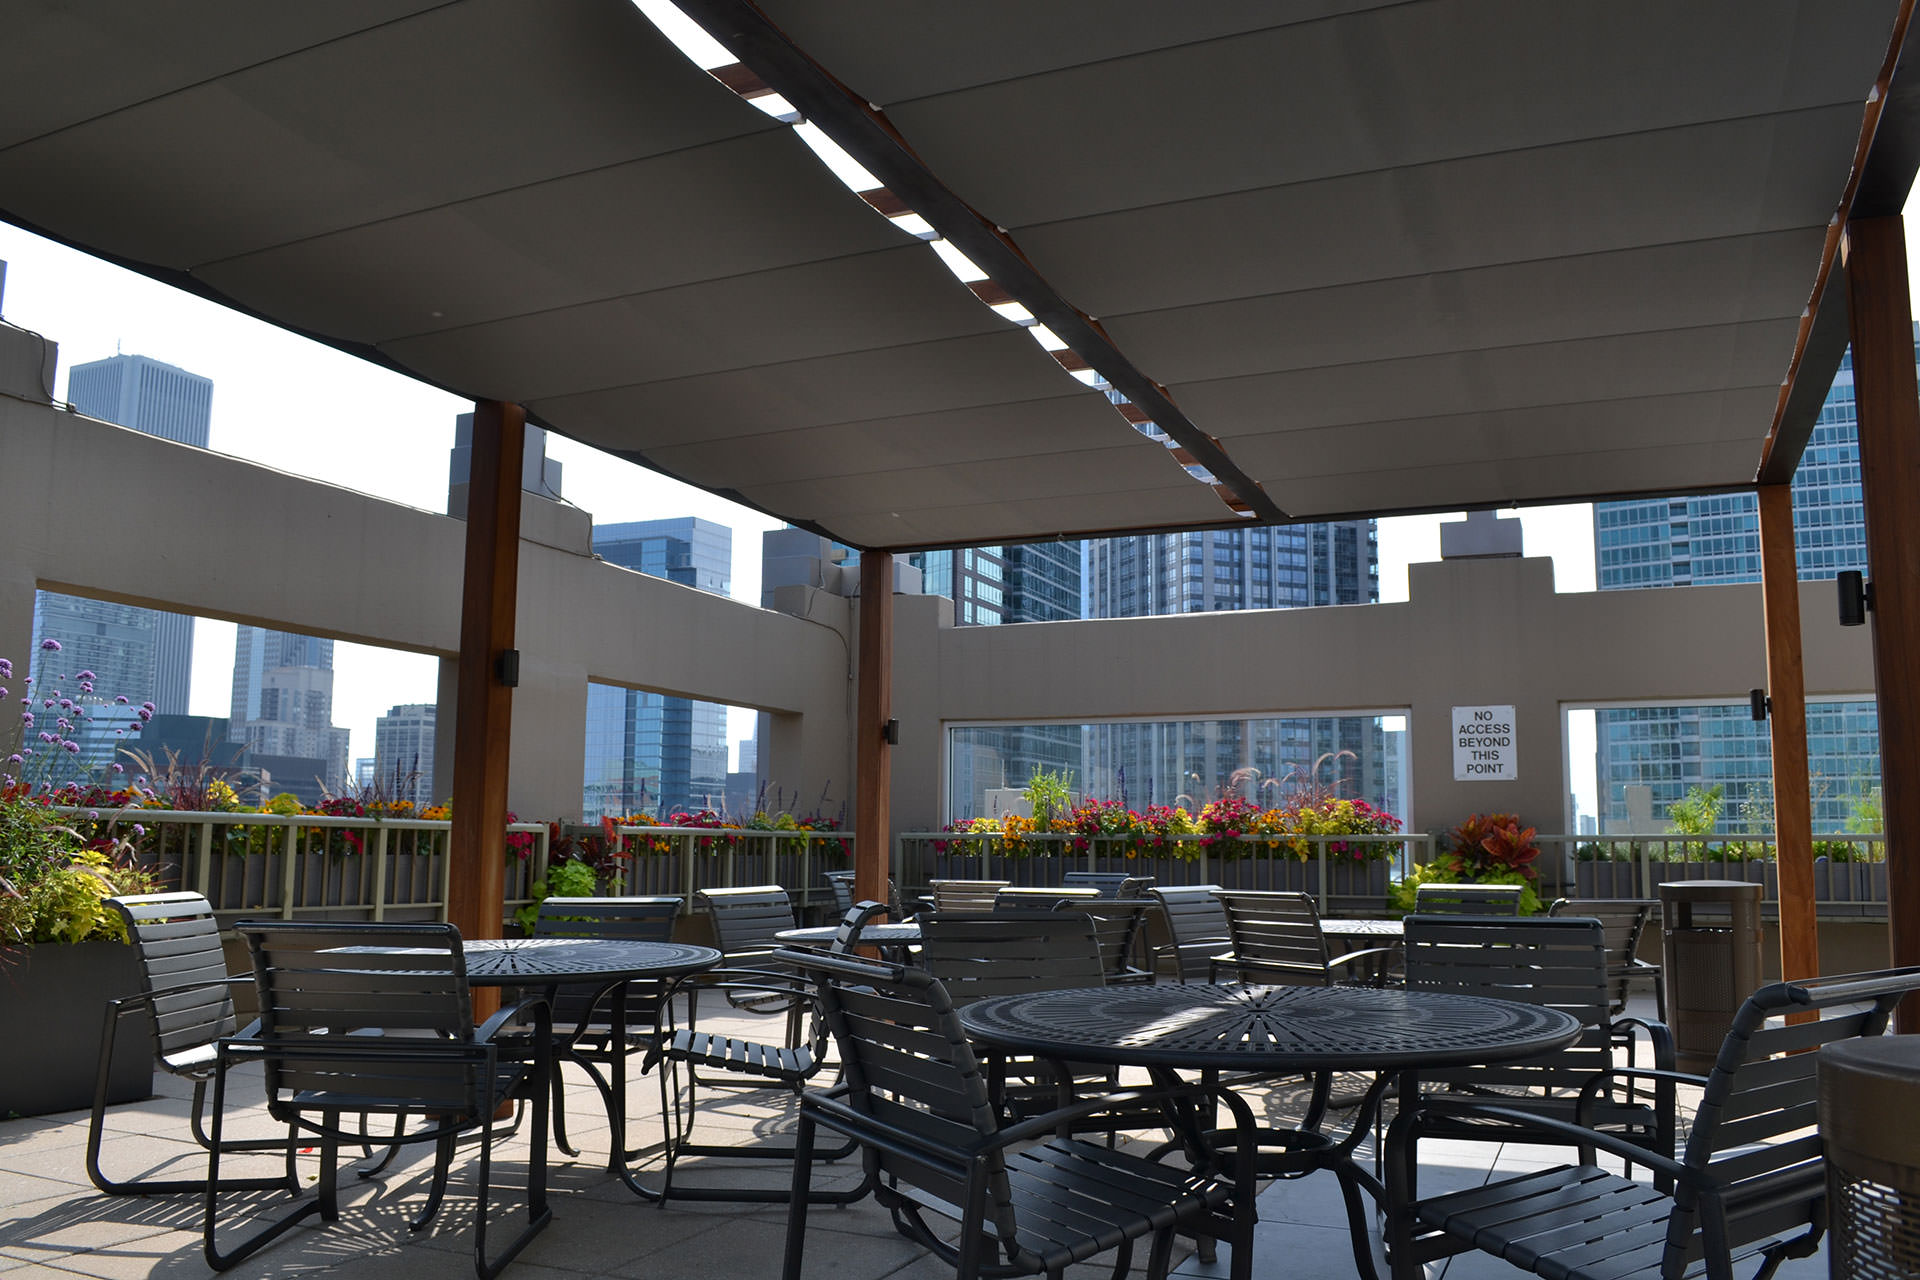 Chicago Roof Deck Turns To Shadefx For Shade And Privacy Solutions On Rooftop Patio